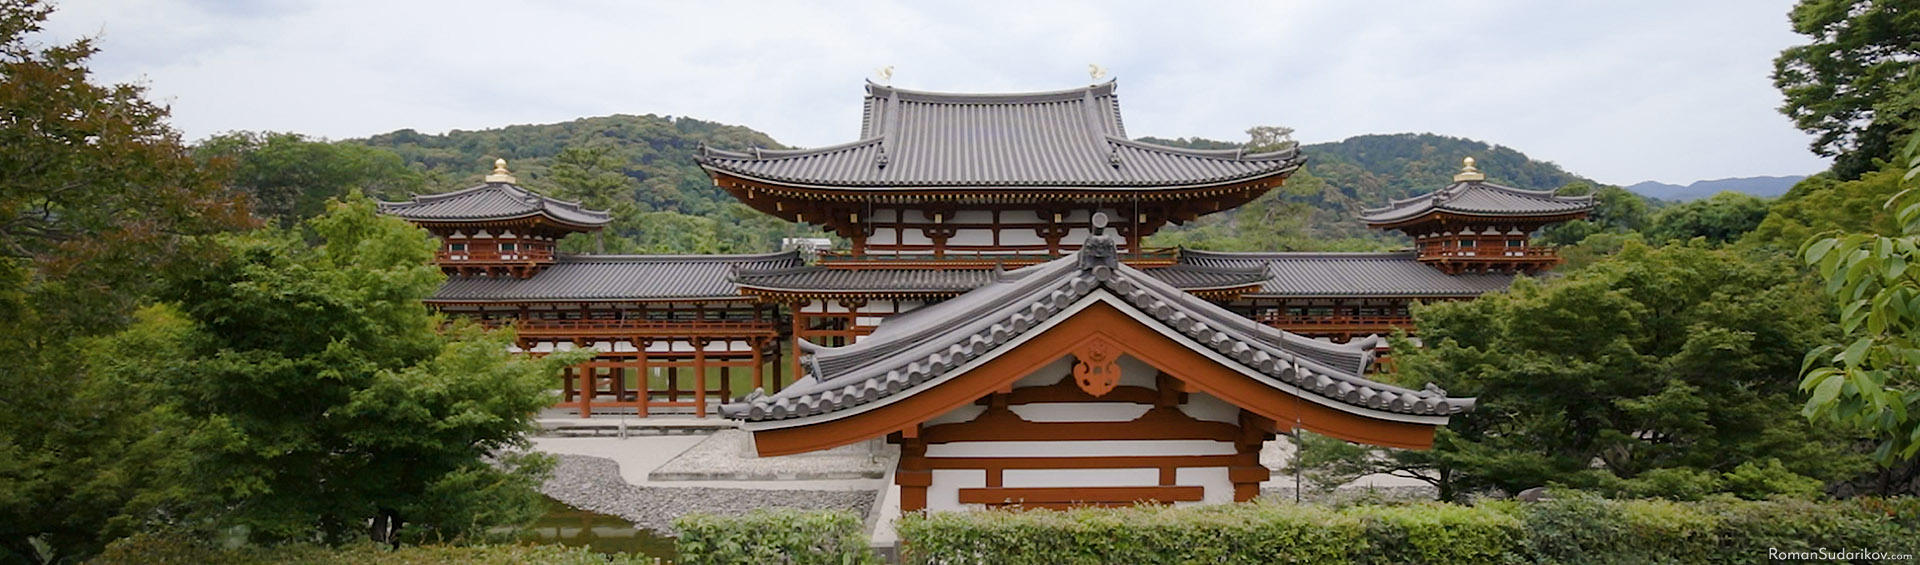 The roof if Phoenix Hall at Byodoin Temple in Uji